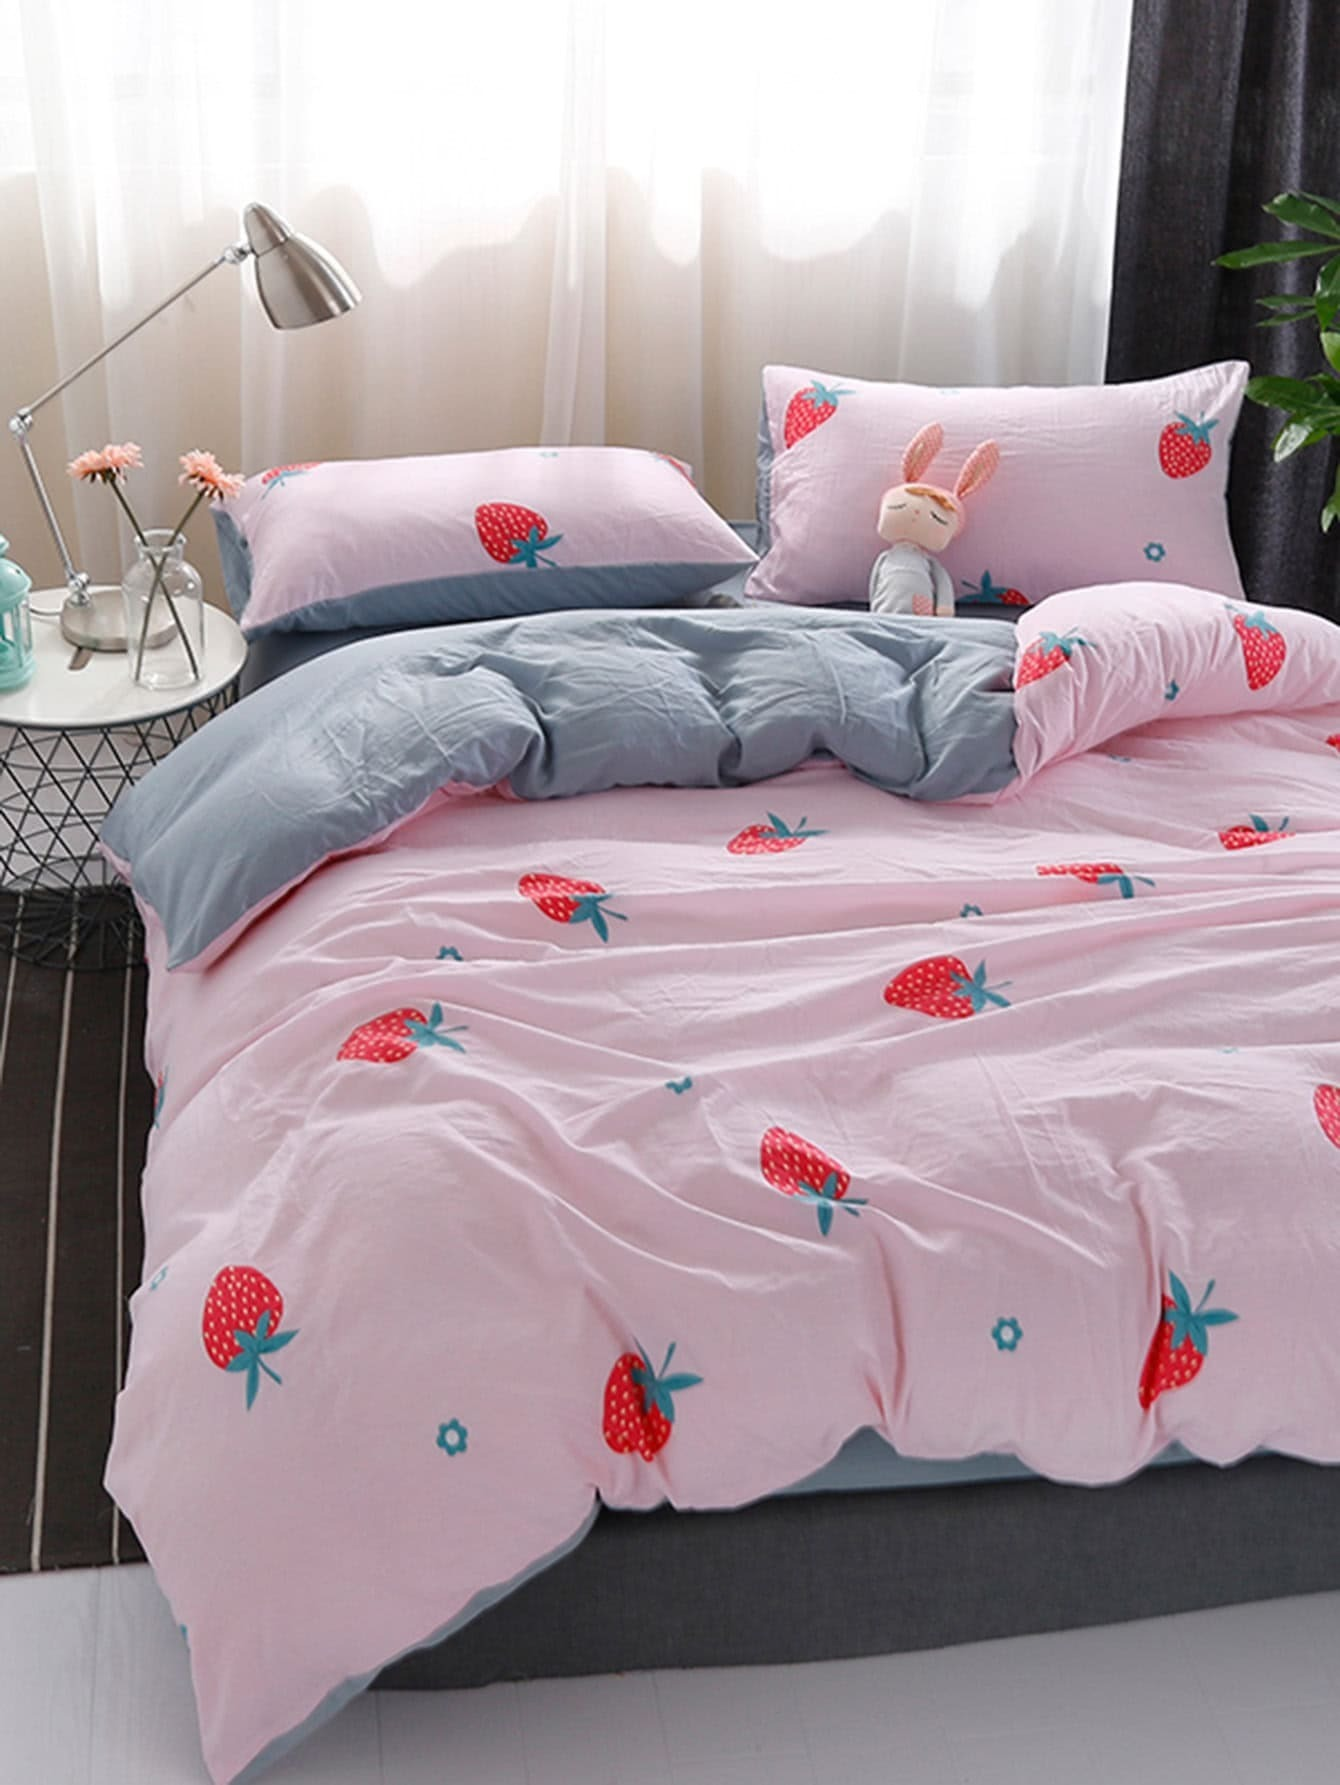 2.0m 4Pcs Fruit Print Duvet Cover Set 1 2m 4pcs fruit print duvet cover set